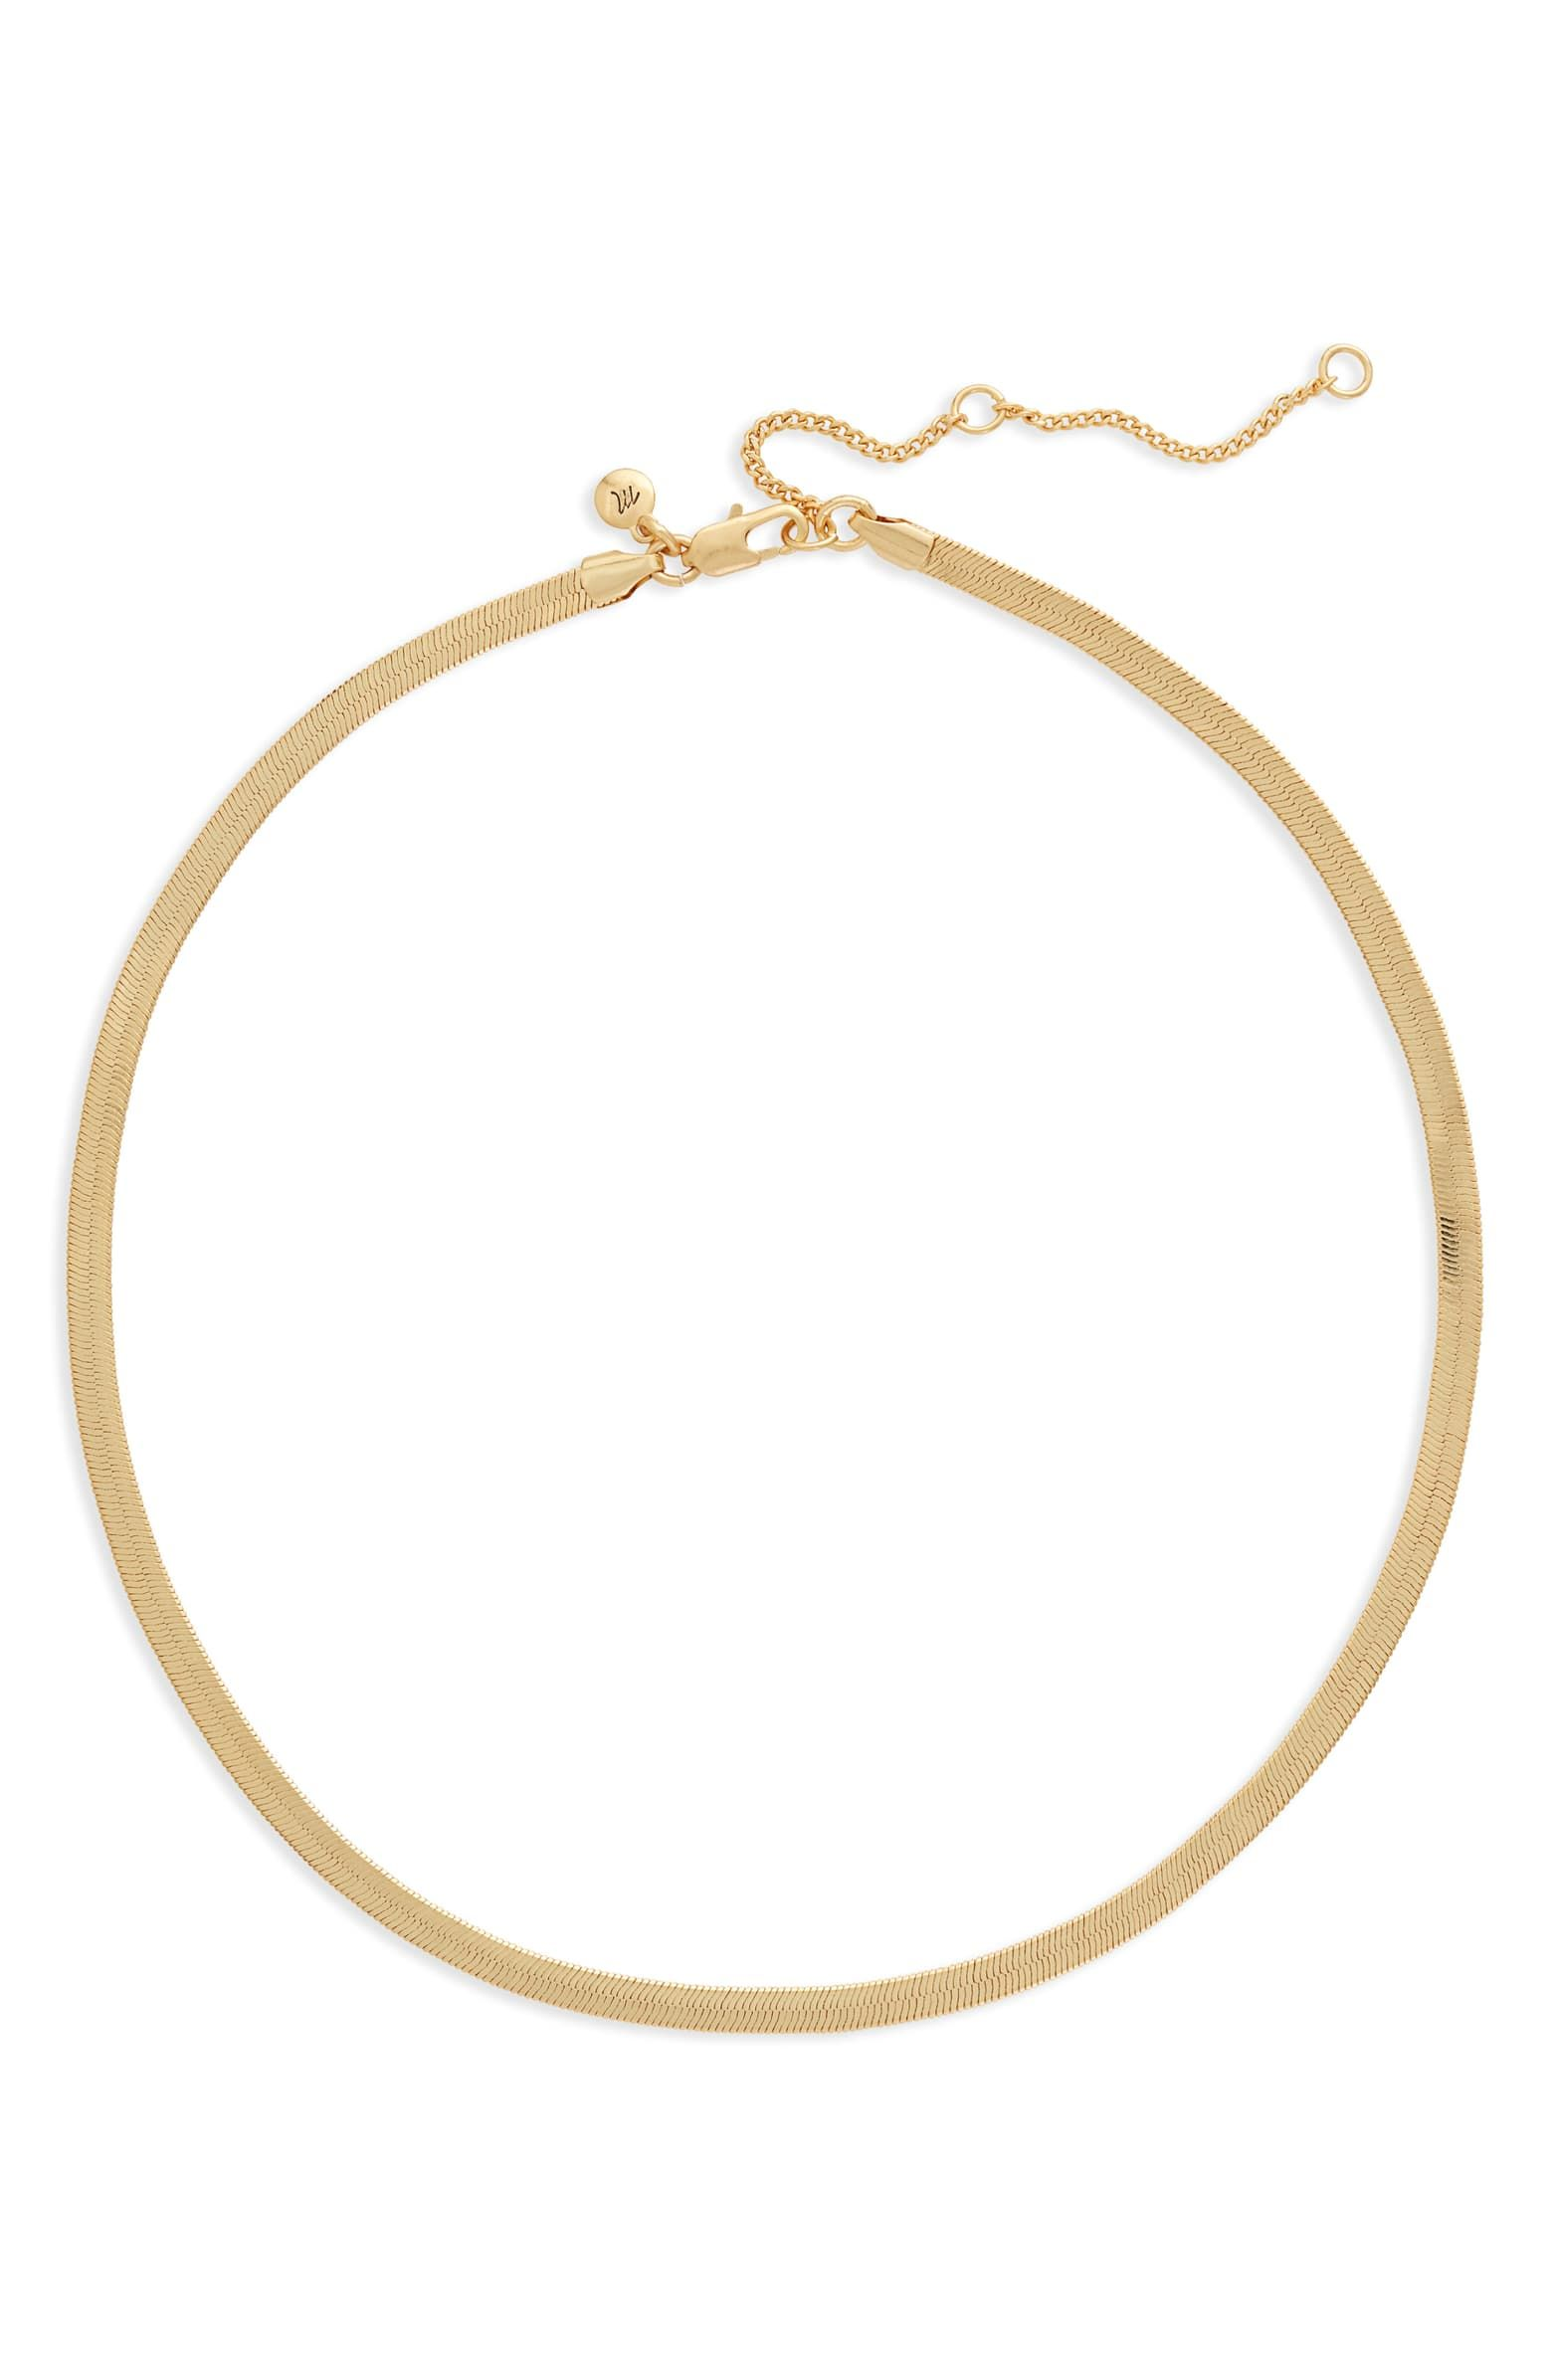 I am Jewellery-Obsessed—These Are the Items I am Buying Now 4